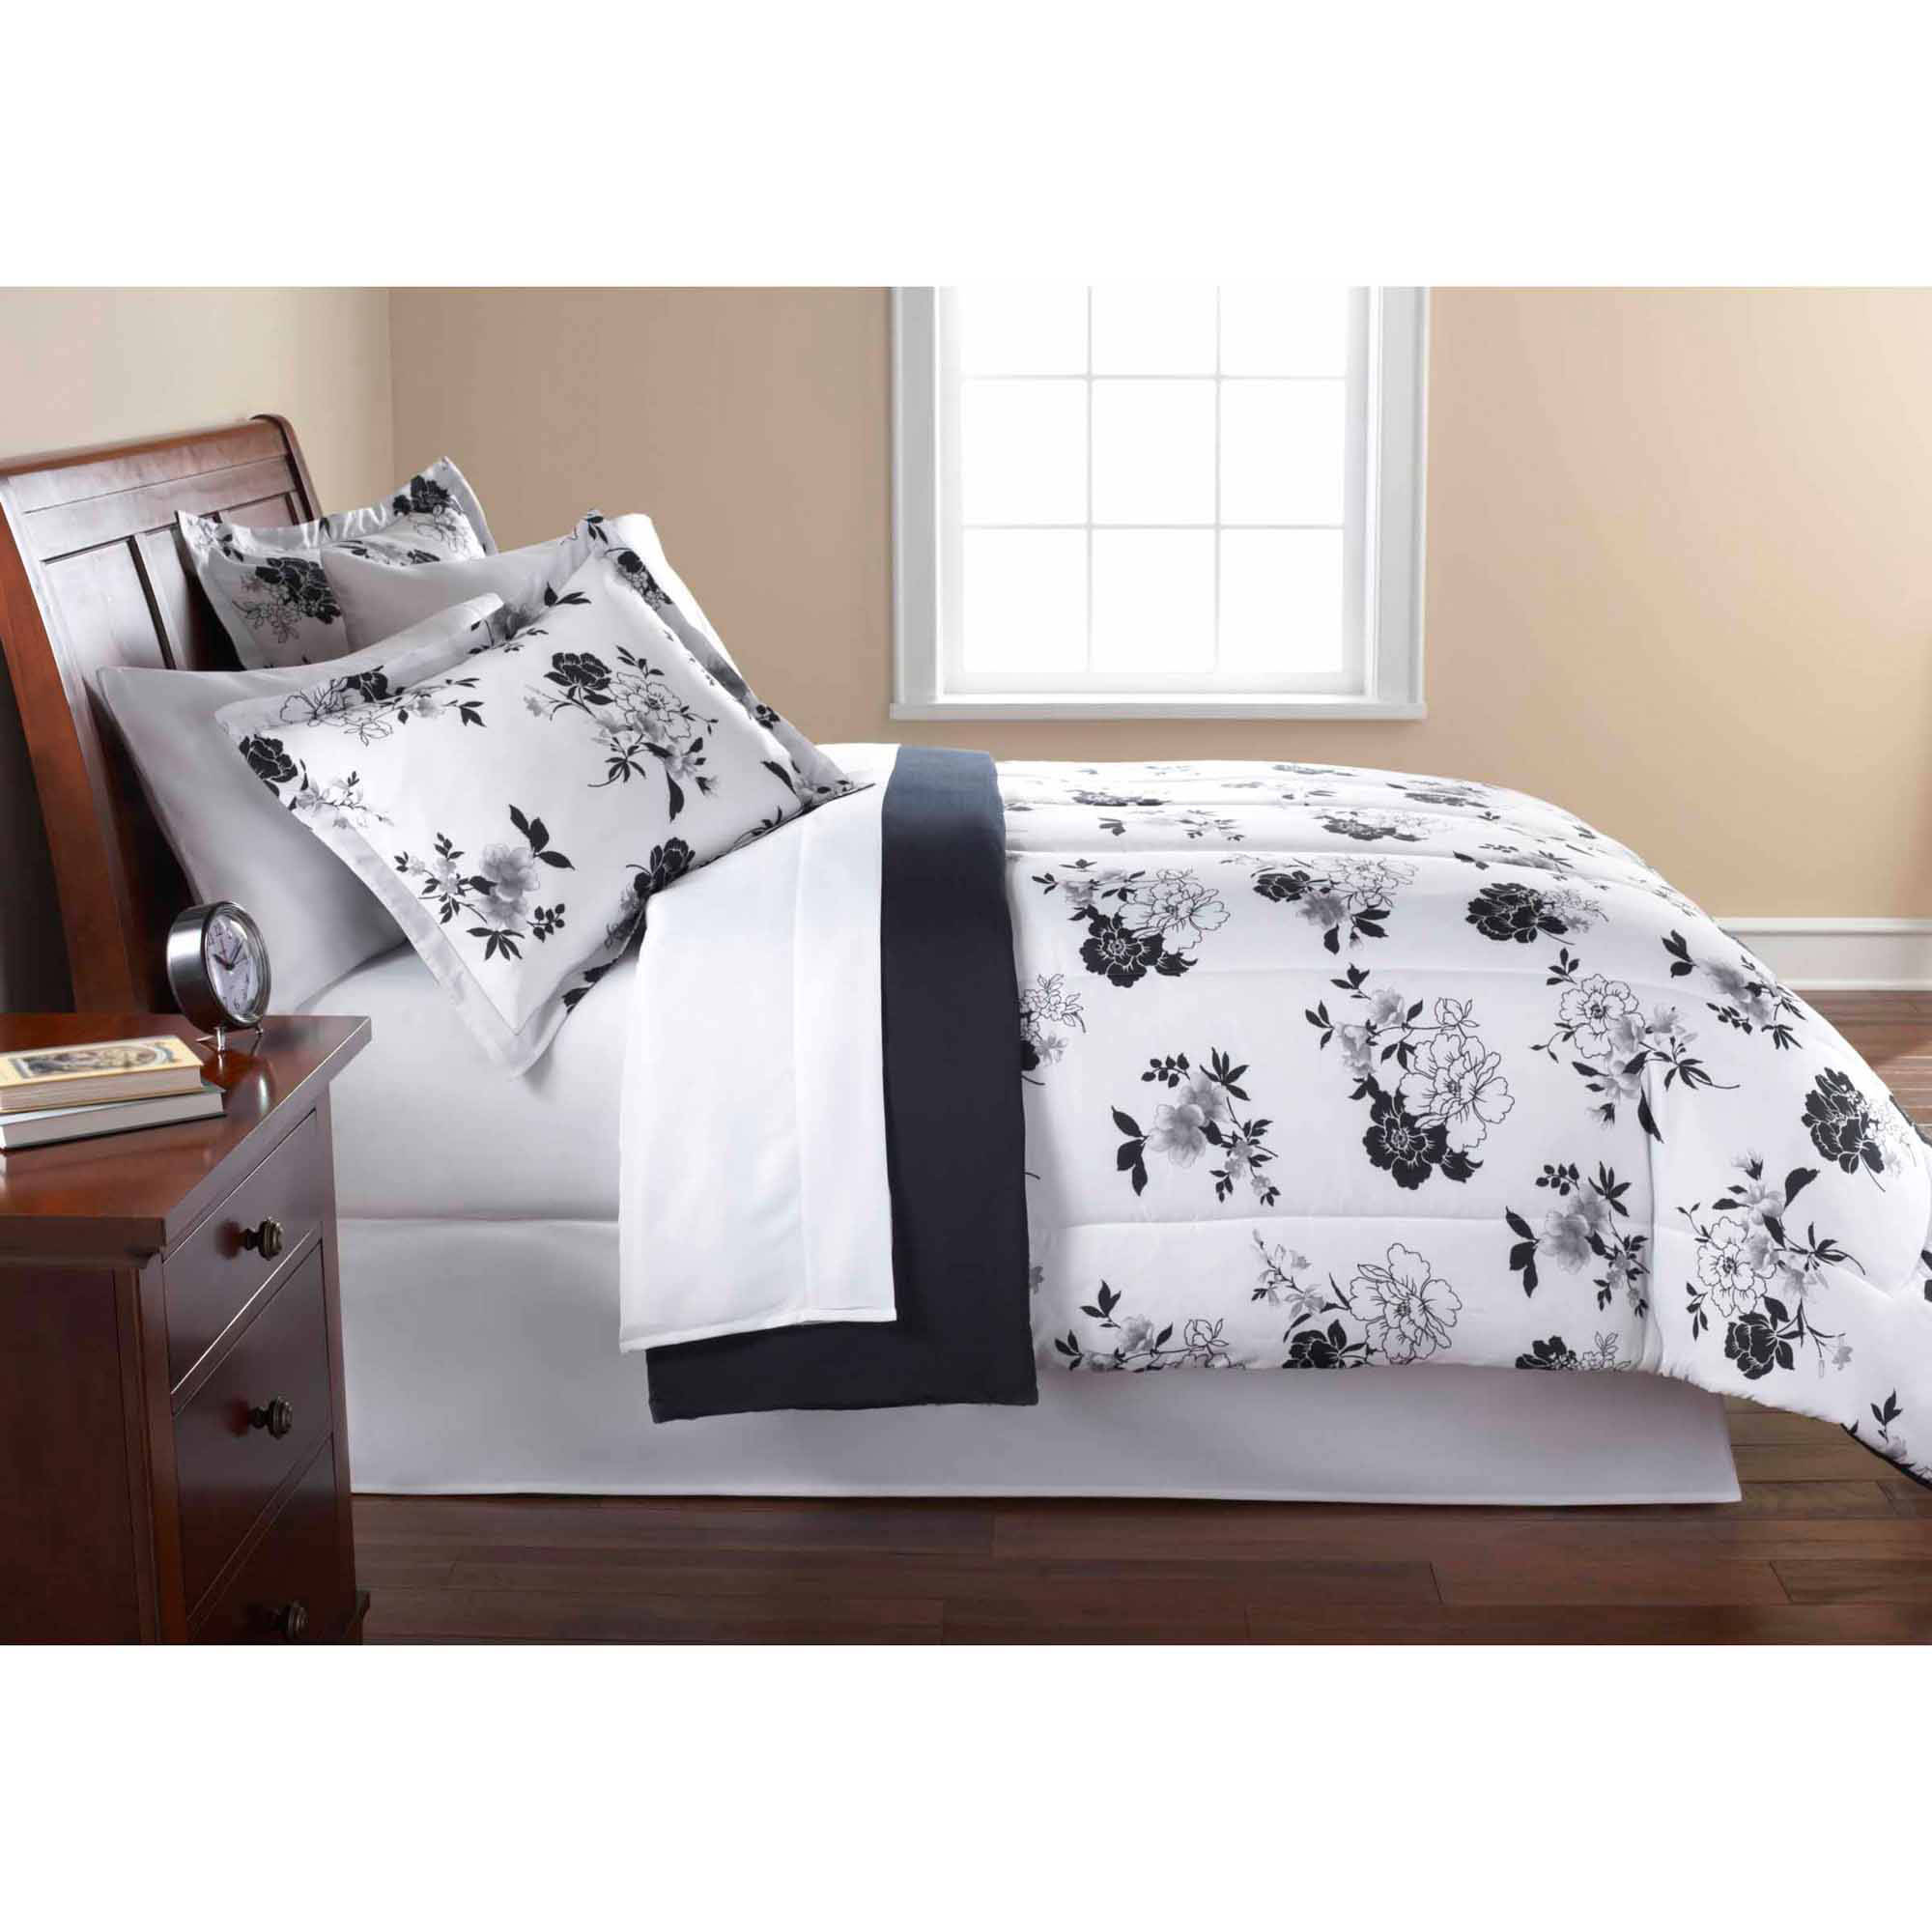 Mainstays Black and White Floral BedinaBag Comforter Set